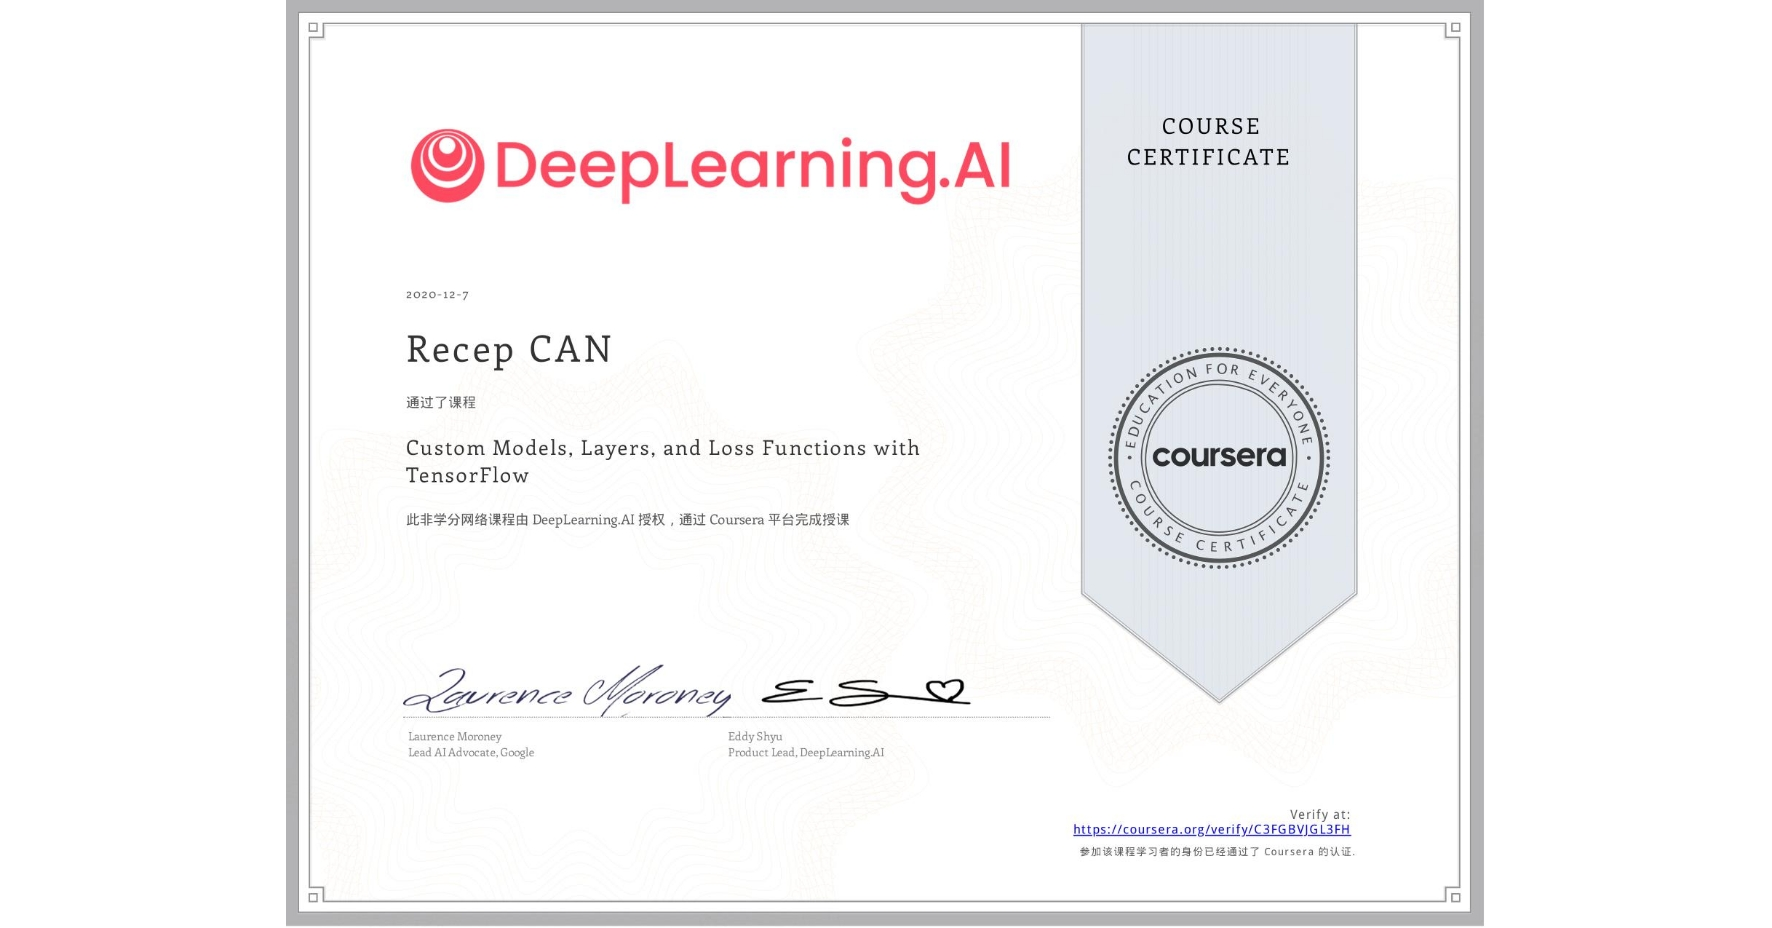 View certificate for Recep CAN, Custom Models, Layers, and Loss Functions with TensorFlow, an online non-credit course authorized by DeepLearning.AI and offered through Coursera